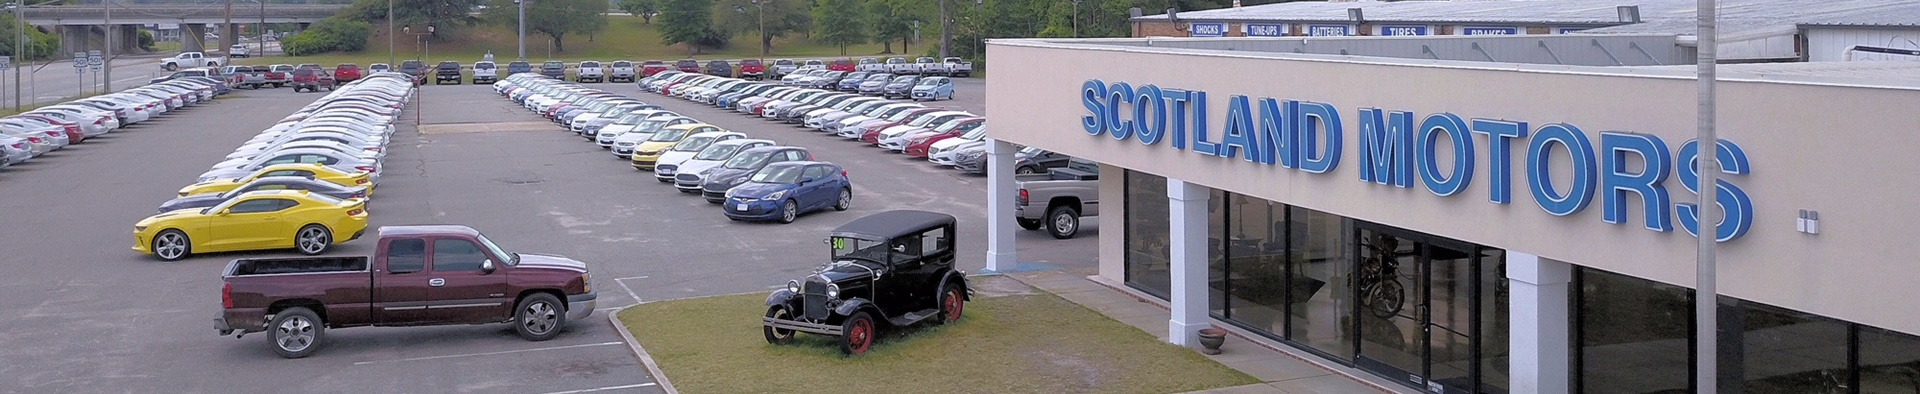 Scotland Motors Inc, Go Look At The Rest Come Buy The Best!